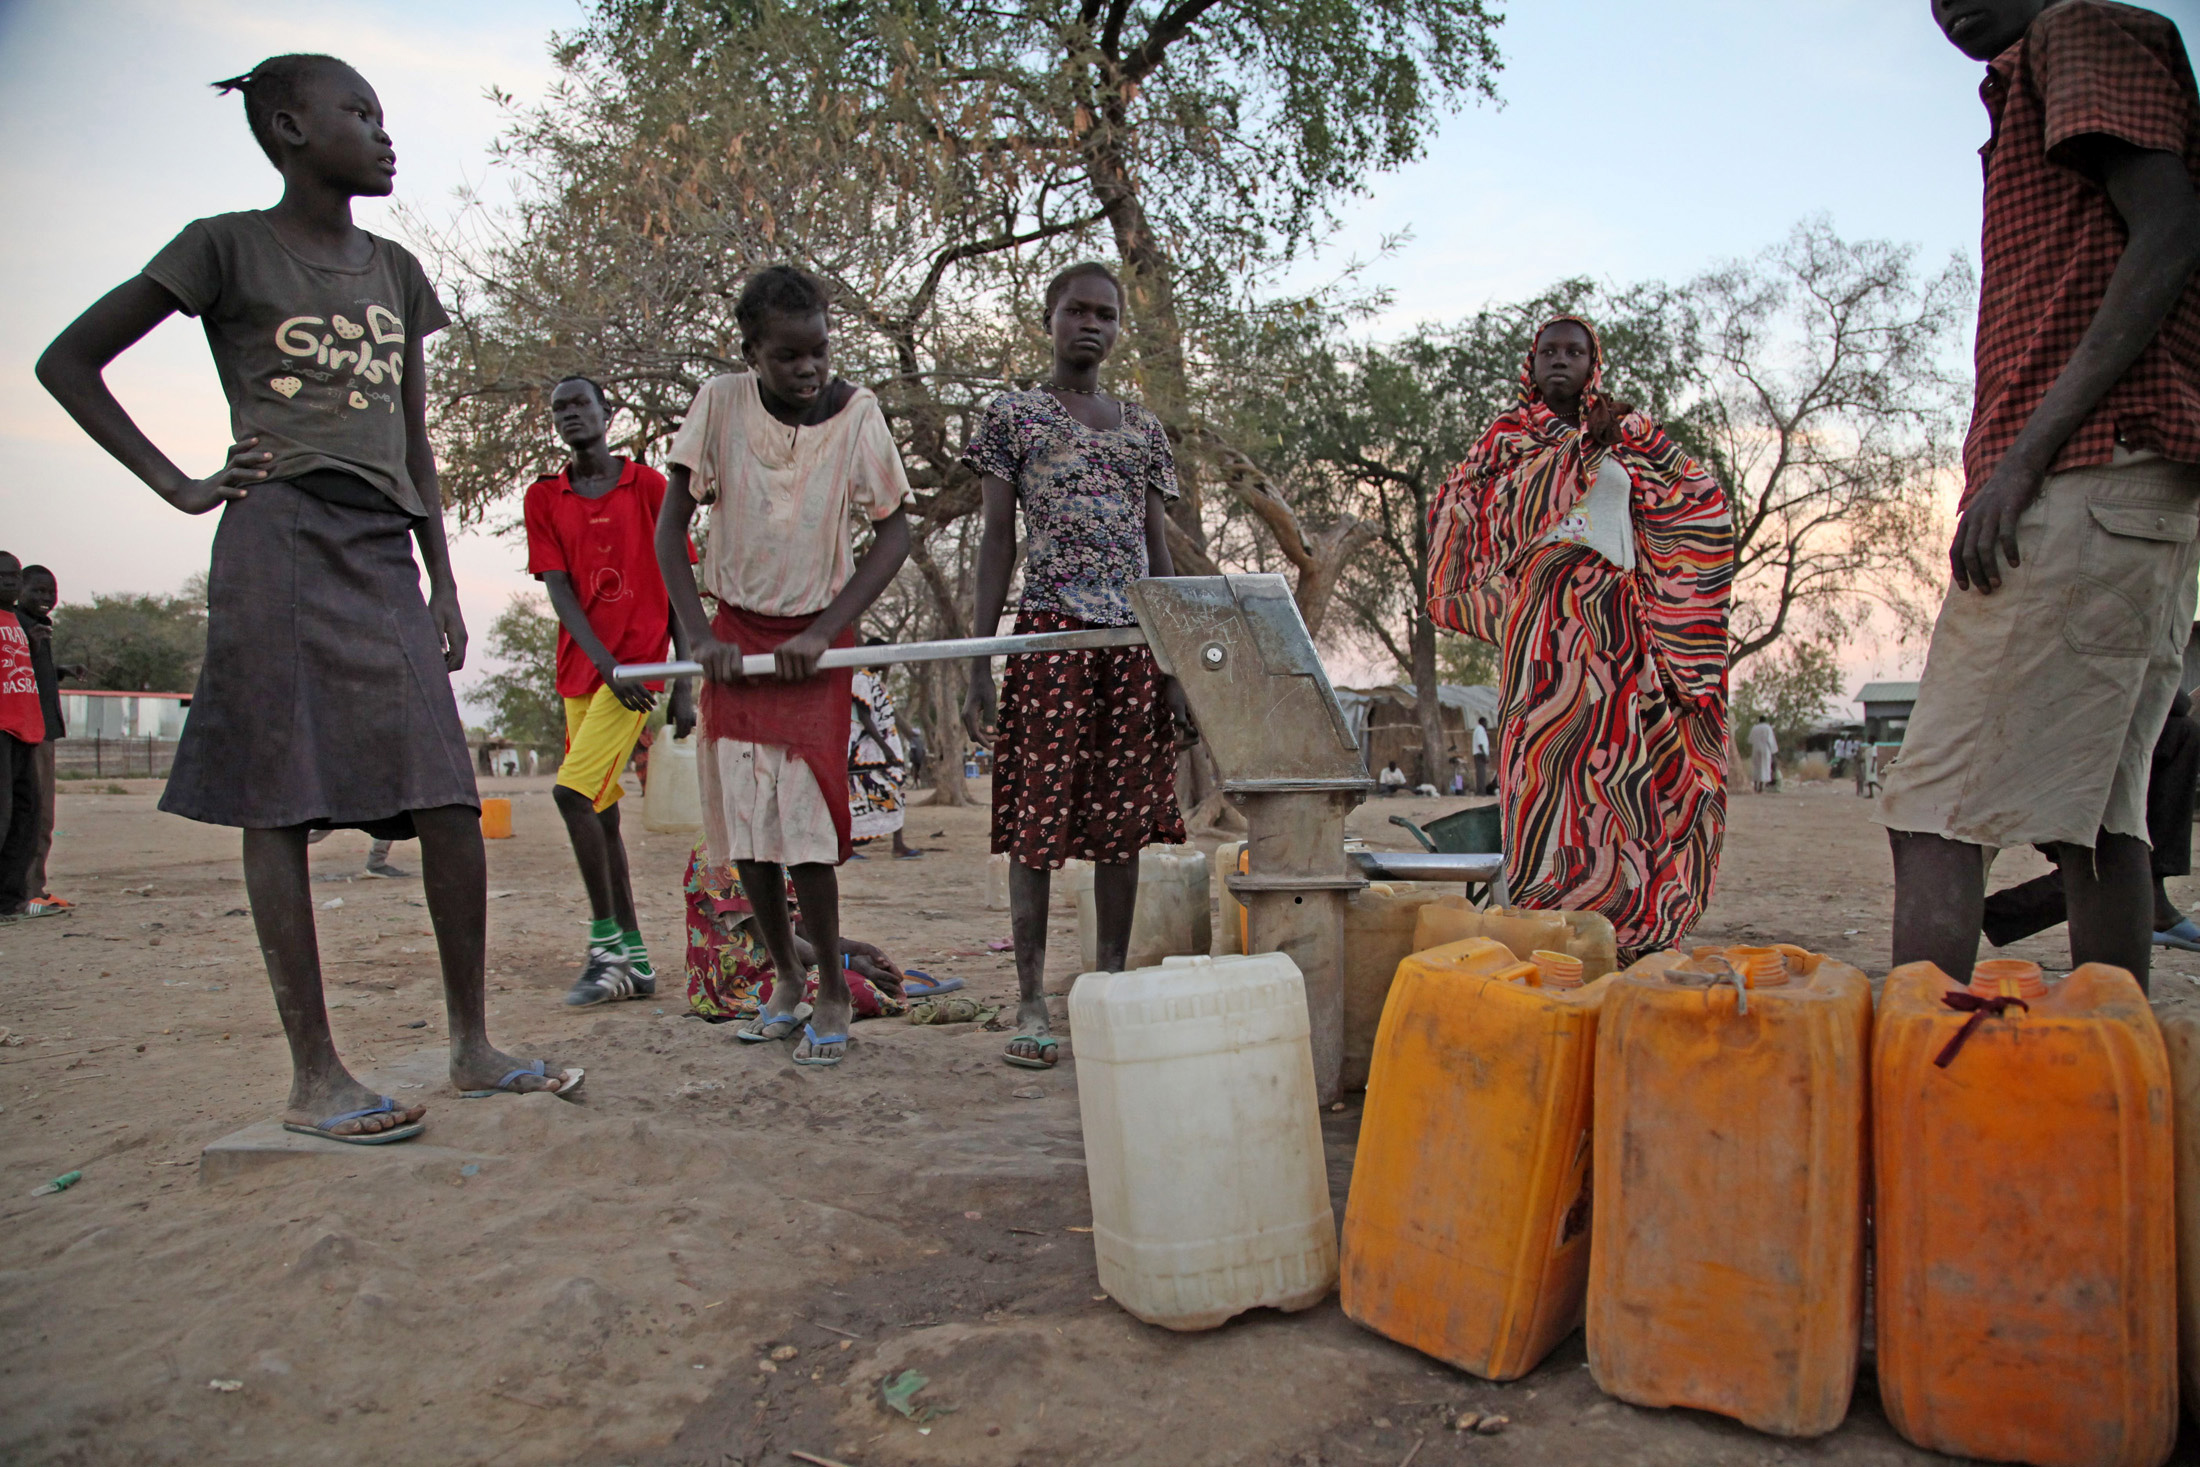 Basic services in Agok are missing as donors are reluctant to assist in rebuilding Abyei